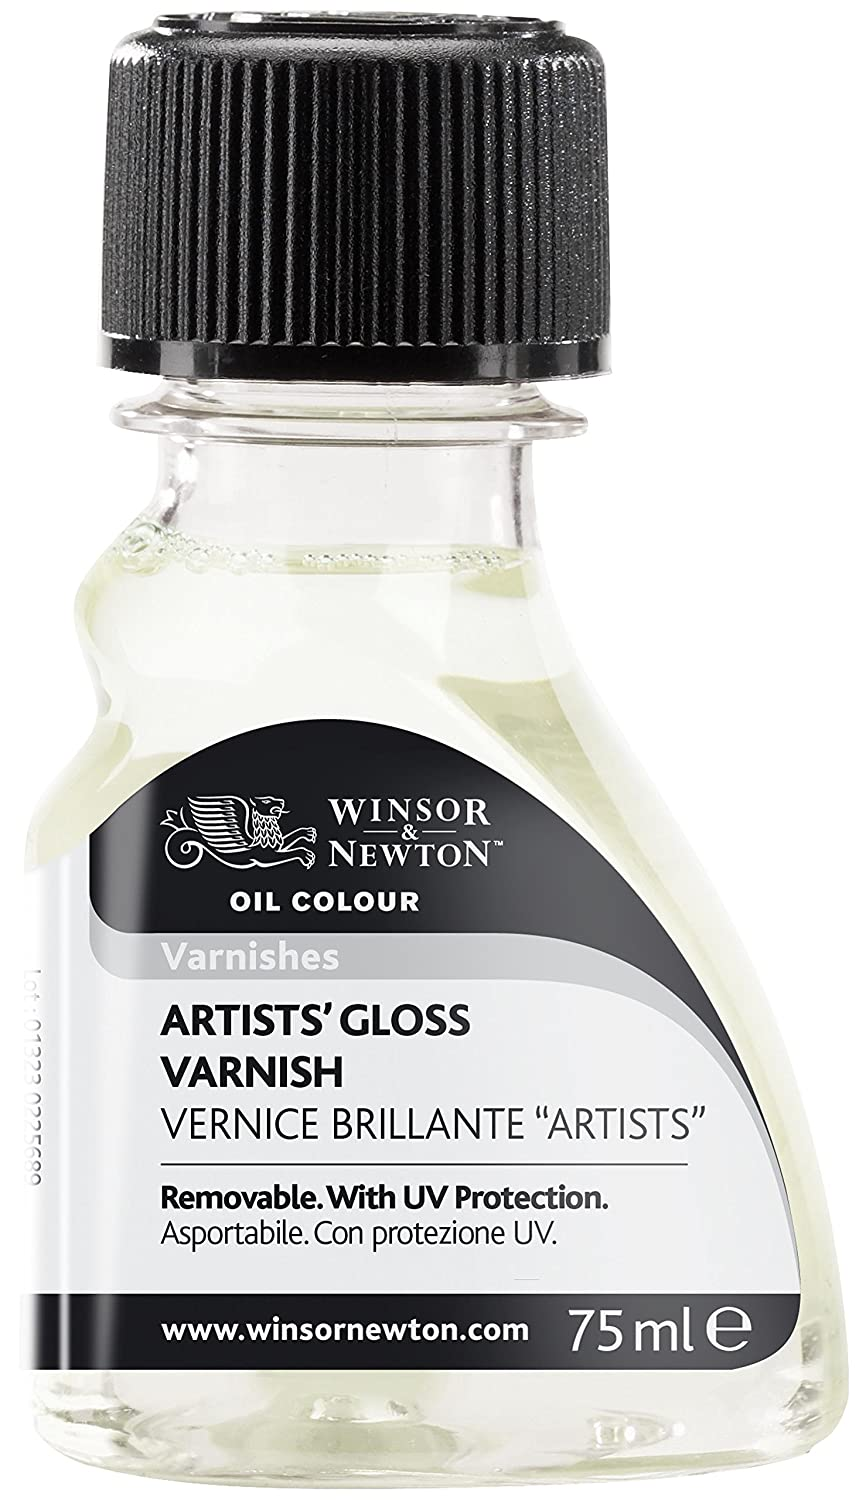 Winsor & Newton Artists' Gloss Varnish, 75ml, 2 Fl Oz